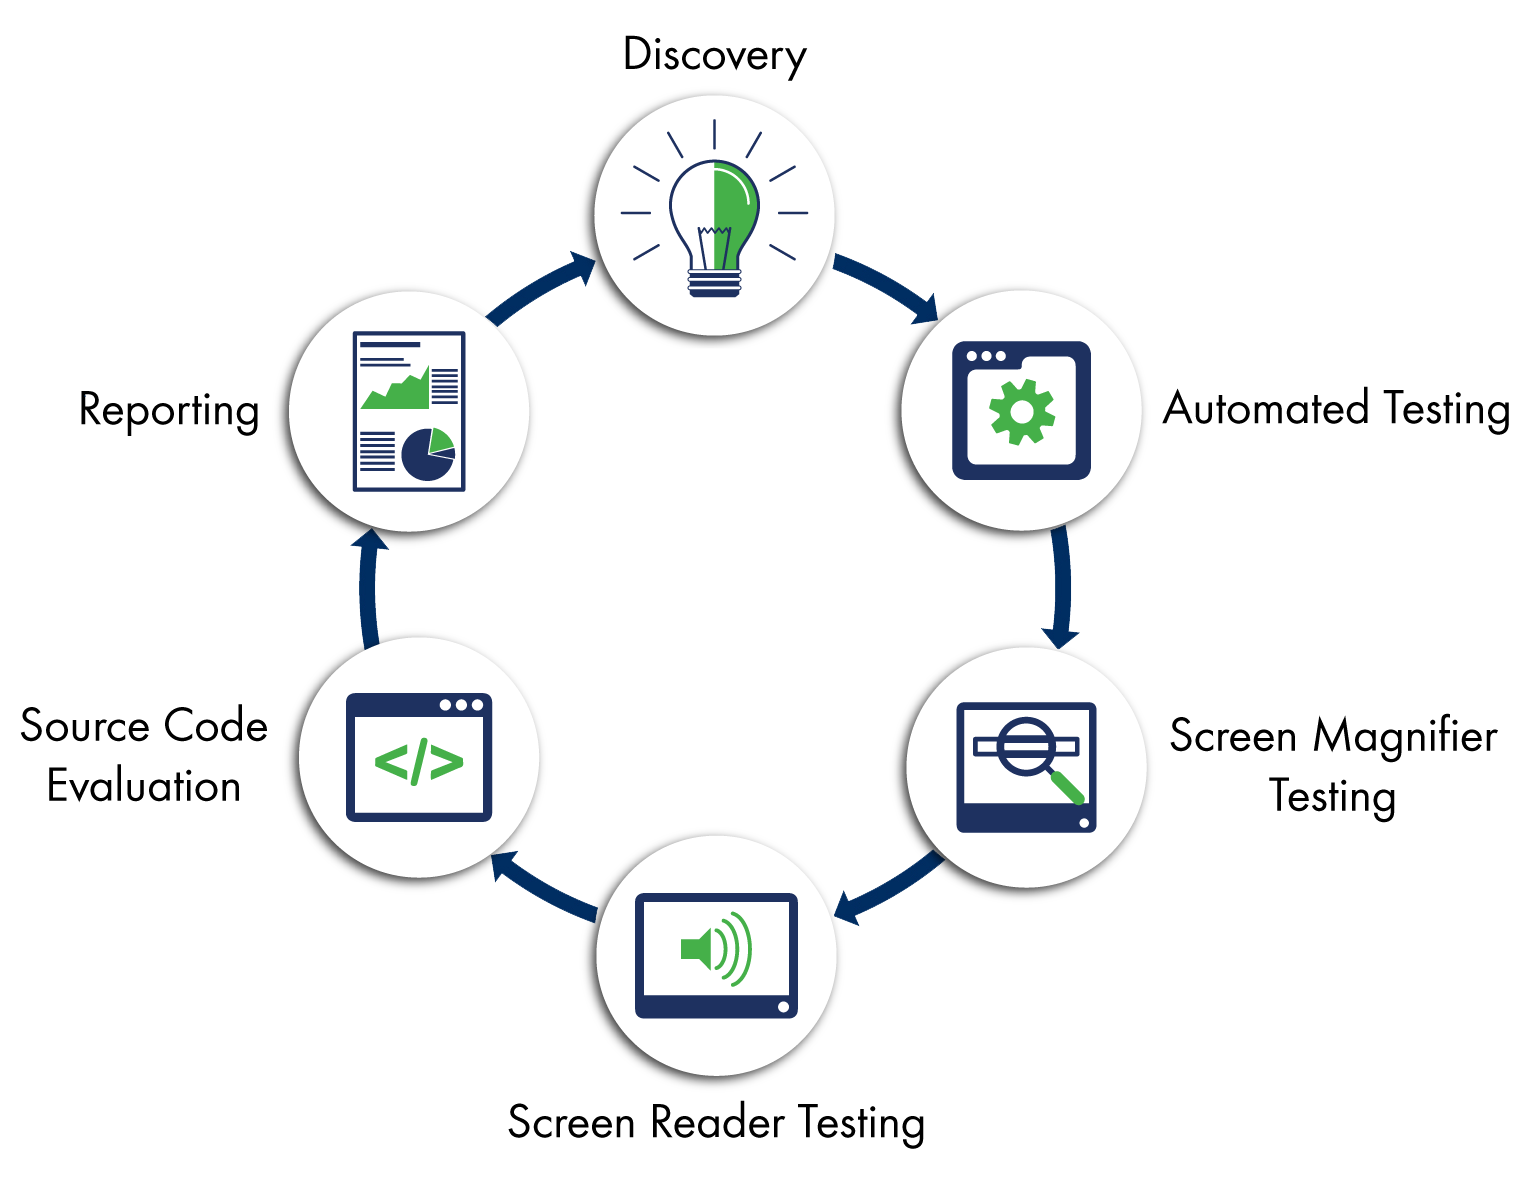 a circle flow chart showing the steps of our process - 1. discovery, 2. automated testing, 3. screen magnifier testing, 4. screen reader testing, 5. source code evaluation, 6. reporting